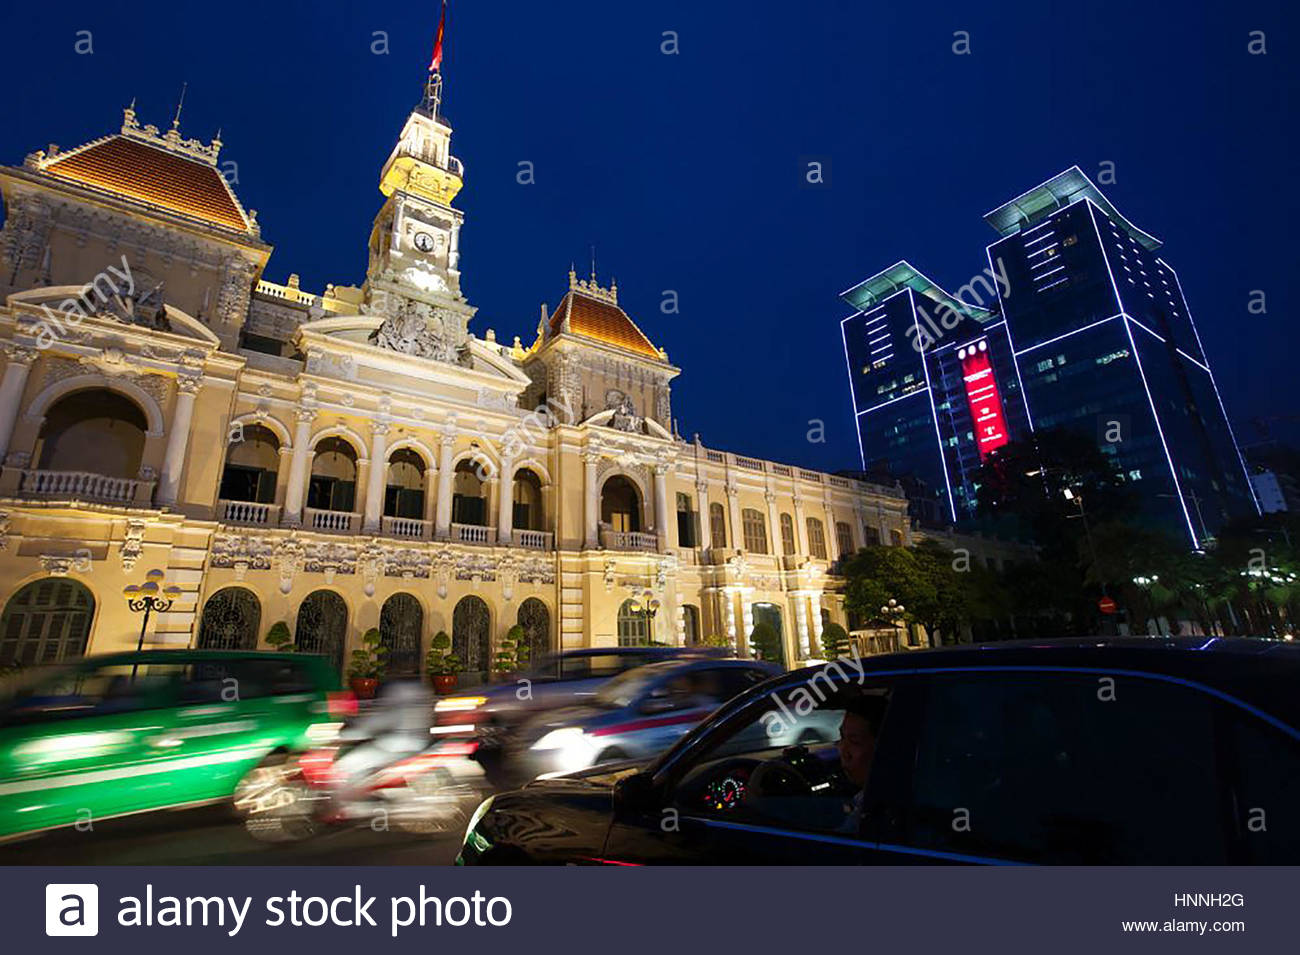 Fast paced traffic and quickly built office towers hem in the historic Ho Chi Minh City Hall. - Stock Image